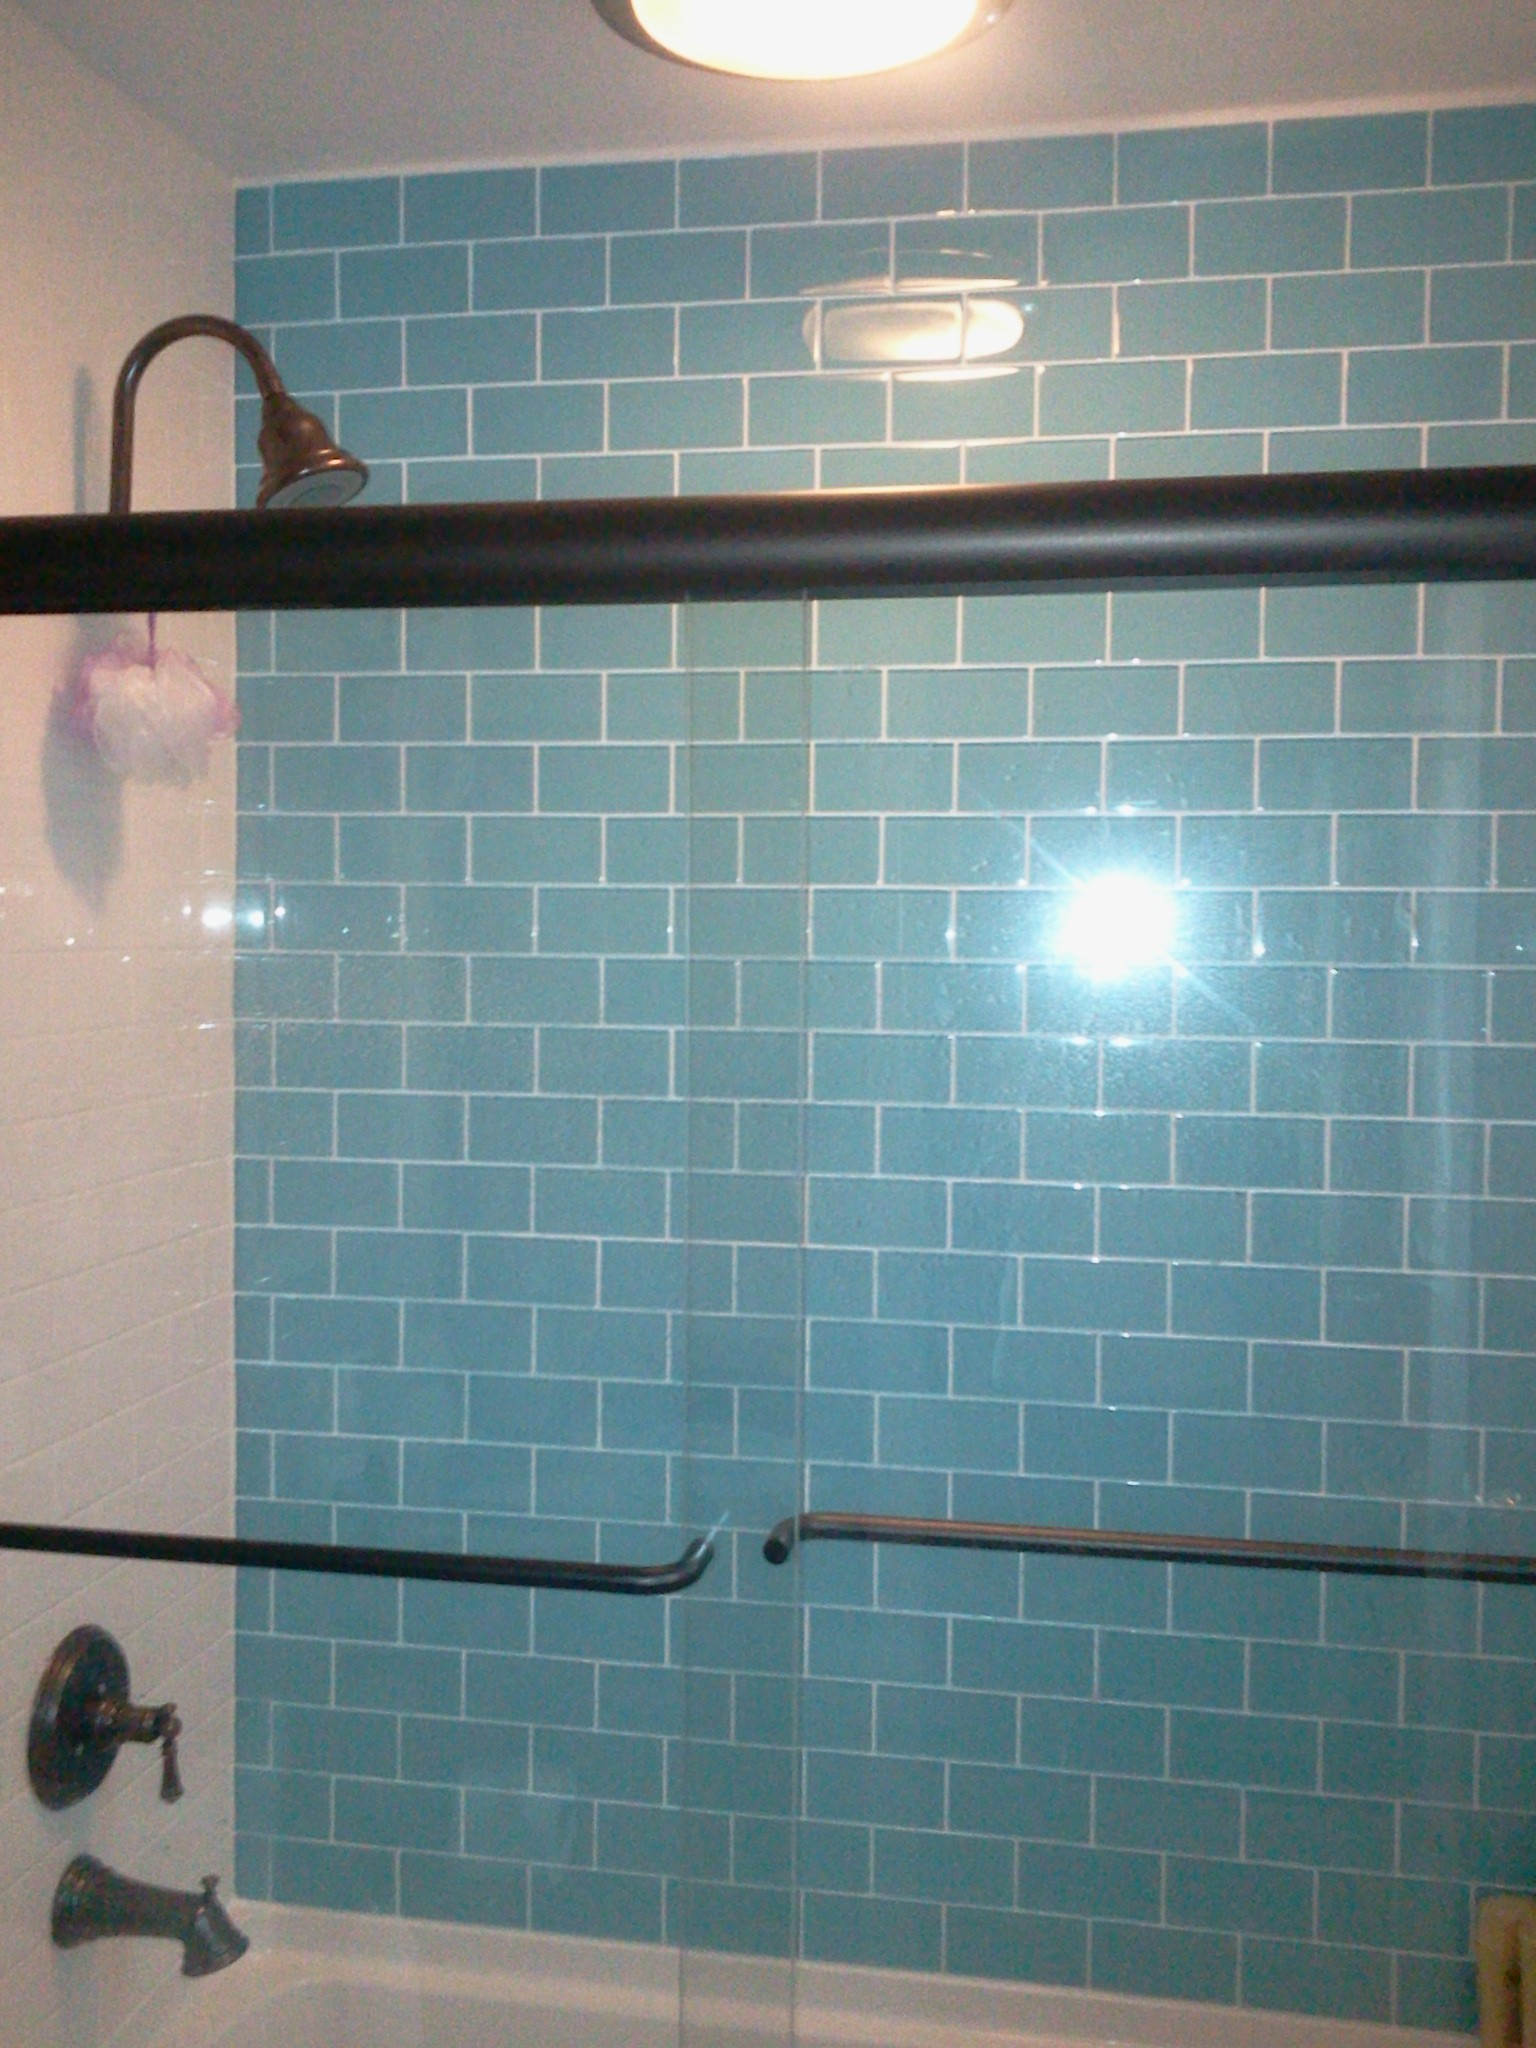 Beaufiful Blue Green Subway Tile Backsplash. Field & Subway Tile ...